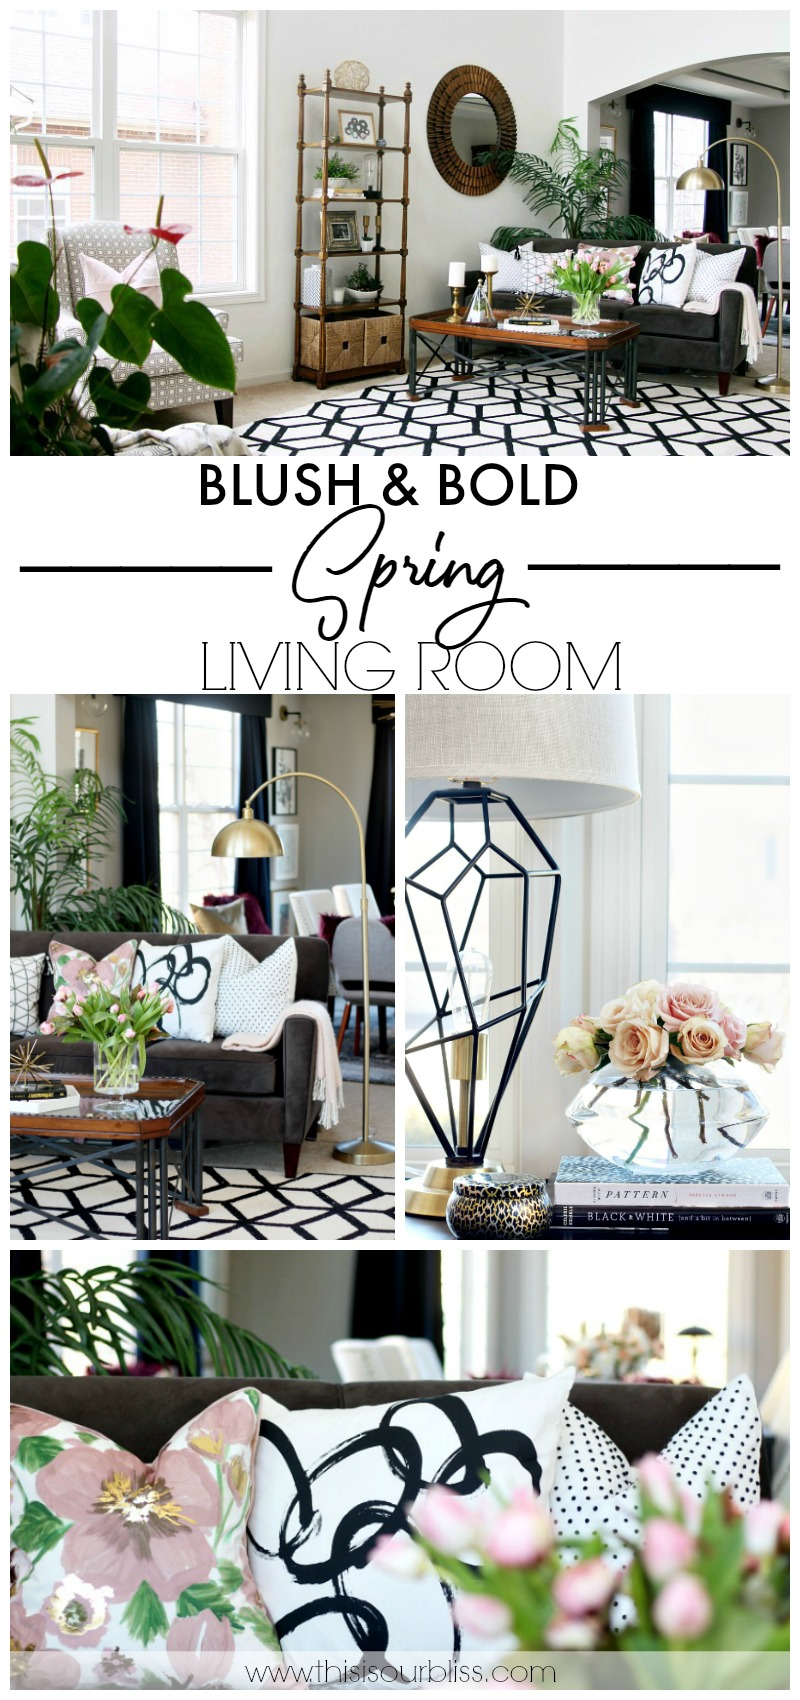 Blush and bold Spring Living Room Tour - Spring Tour of Homes 2018 - This is our Bliss